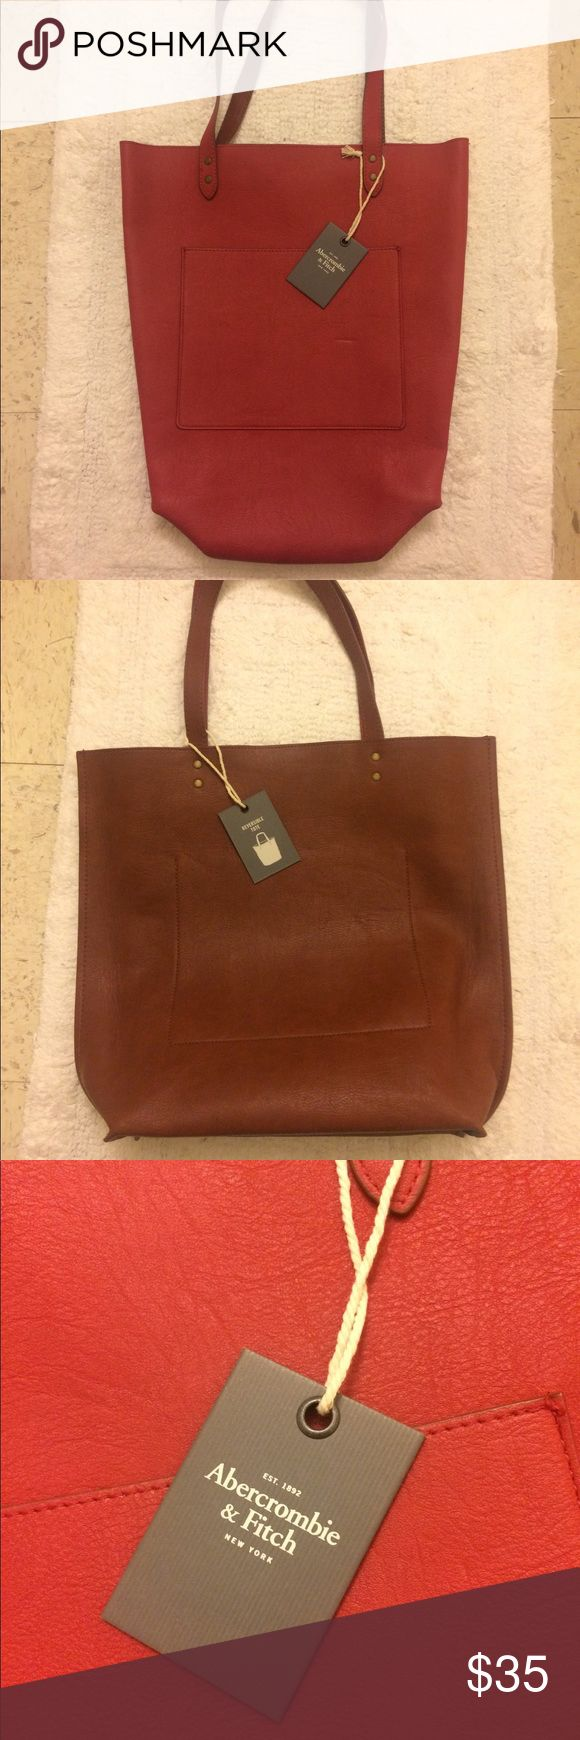 A & F tote bag Reversible red and brown Abercrombie and Fitch tote bag great for a Christmas gift!! Abercrombie & Fitch Bags Totes